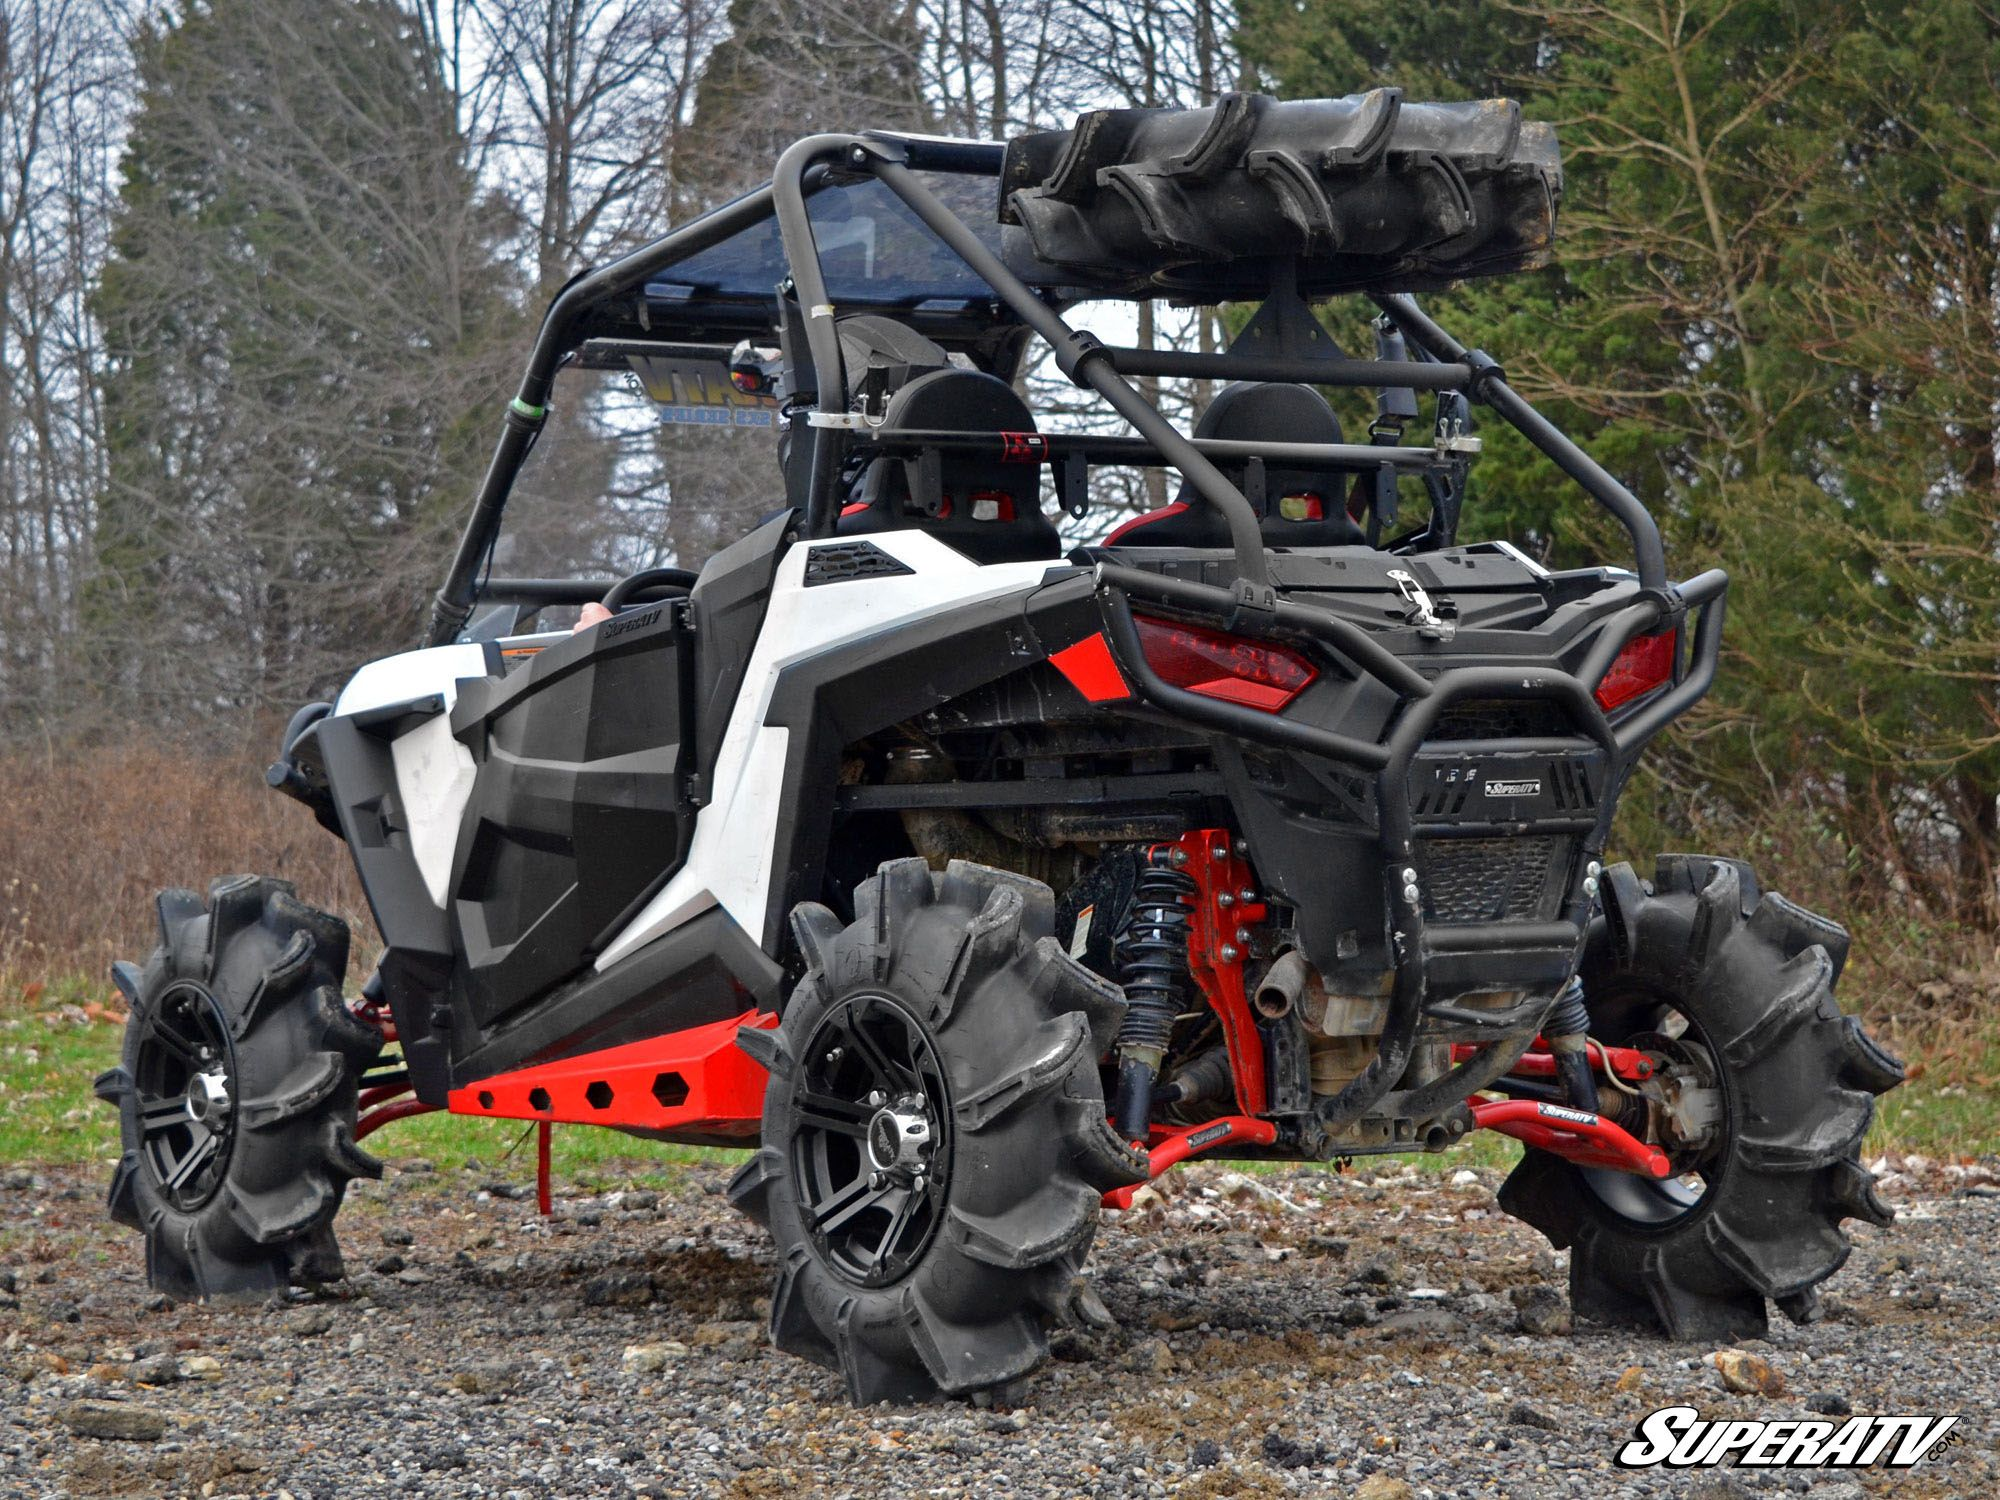 2017 Can Am in addition Canam 2014 Maverick 1000r X Xc Sxs Utv Review as well Utv truck rack additionally Watch also . on arctic cat 1000 4 seater